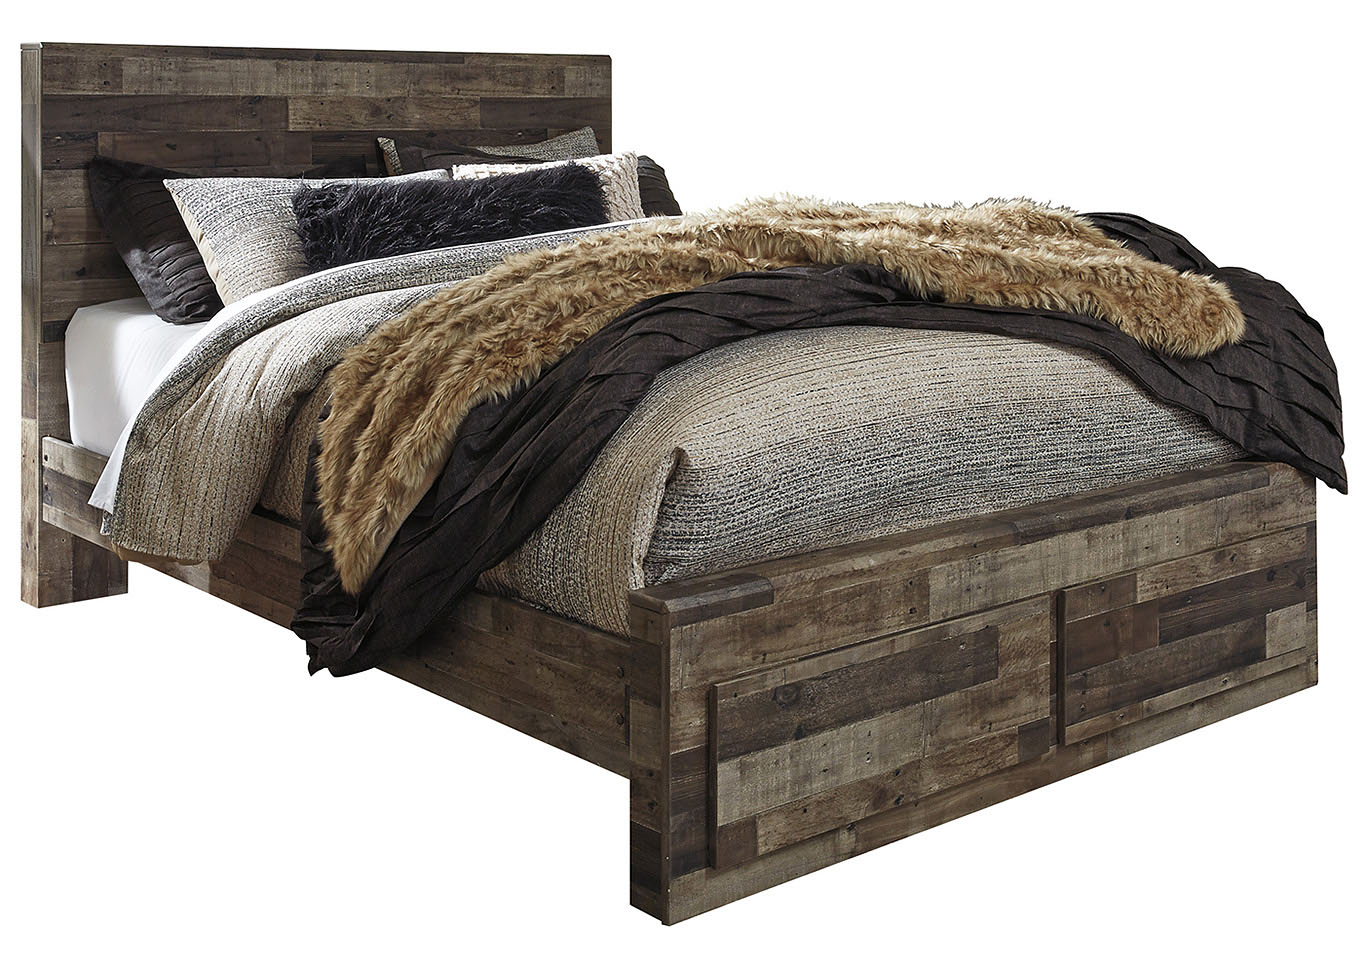 Derekson Queen Platform Bed,Benchcraft